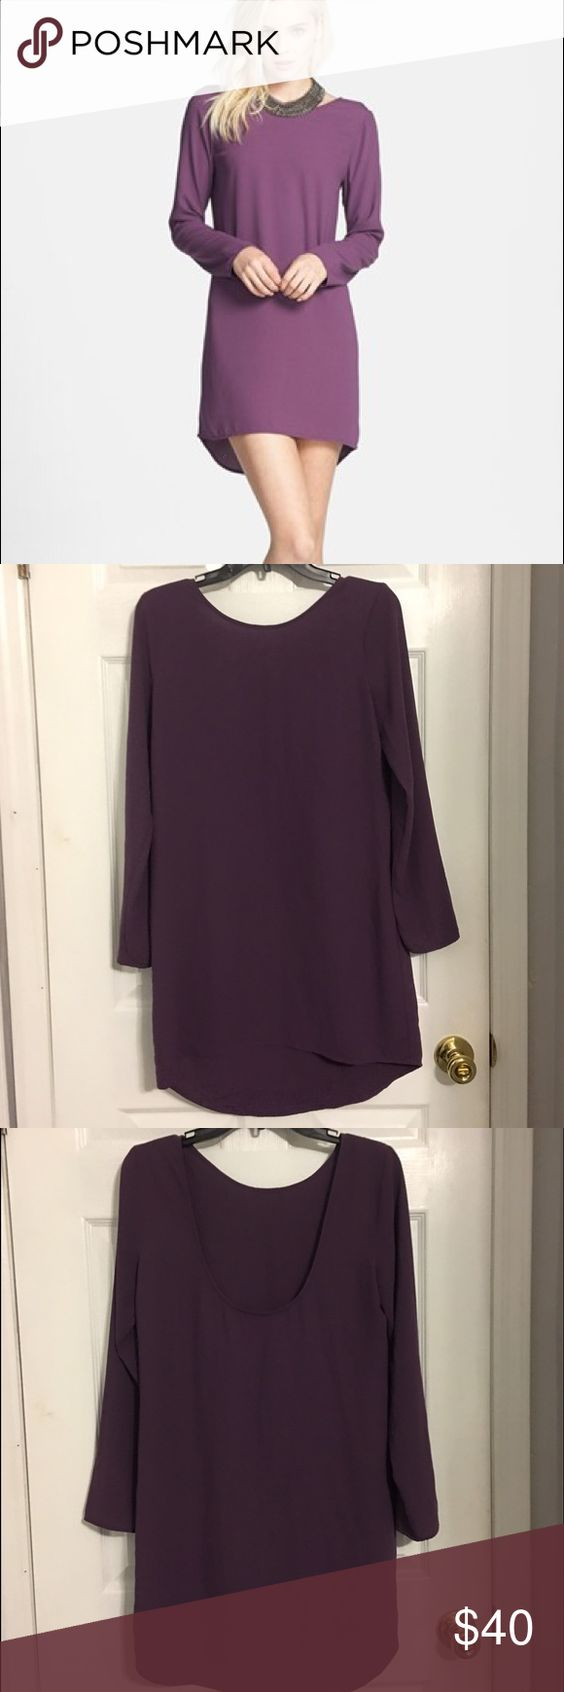 Tildon Scoop Back Shift Dress Purchased from Nordstrom. Size small. Excellent condition!!! Worn one time to work. Fits true to size but can be right in the shoulders. 100% polyester. Tildon Dresses